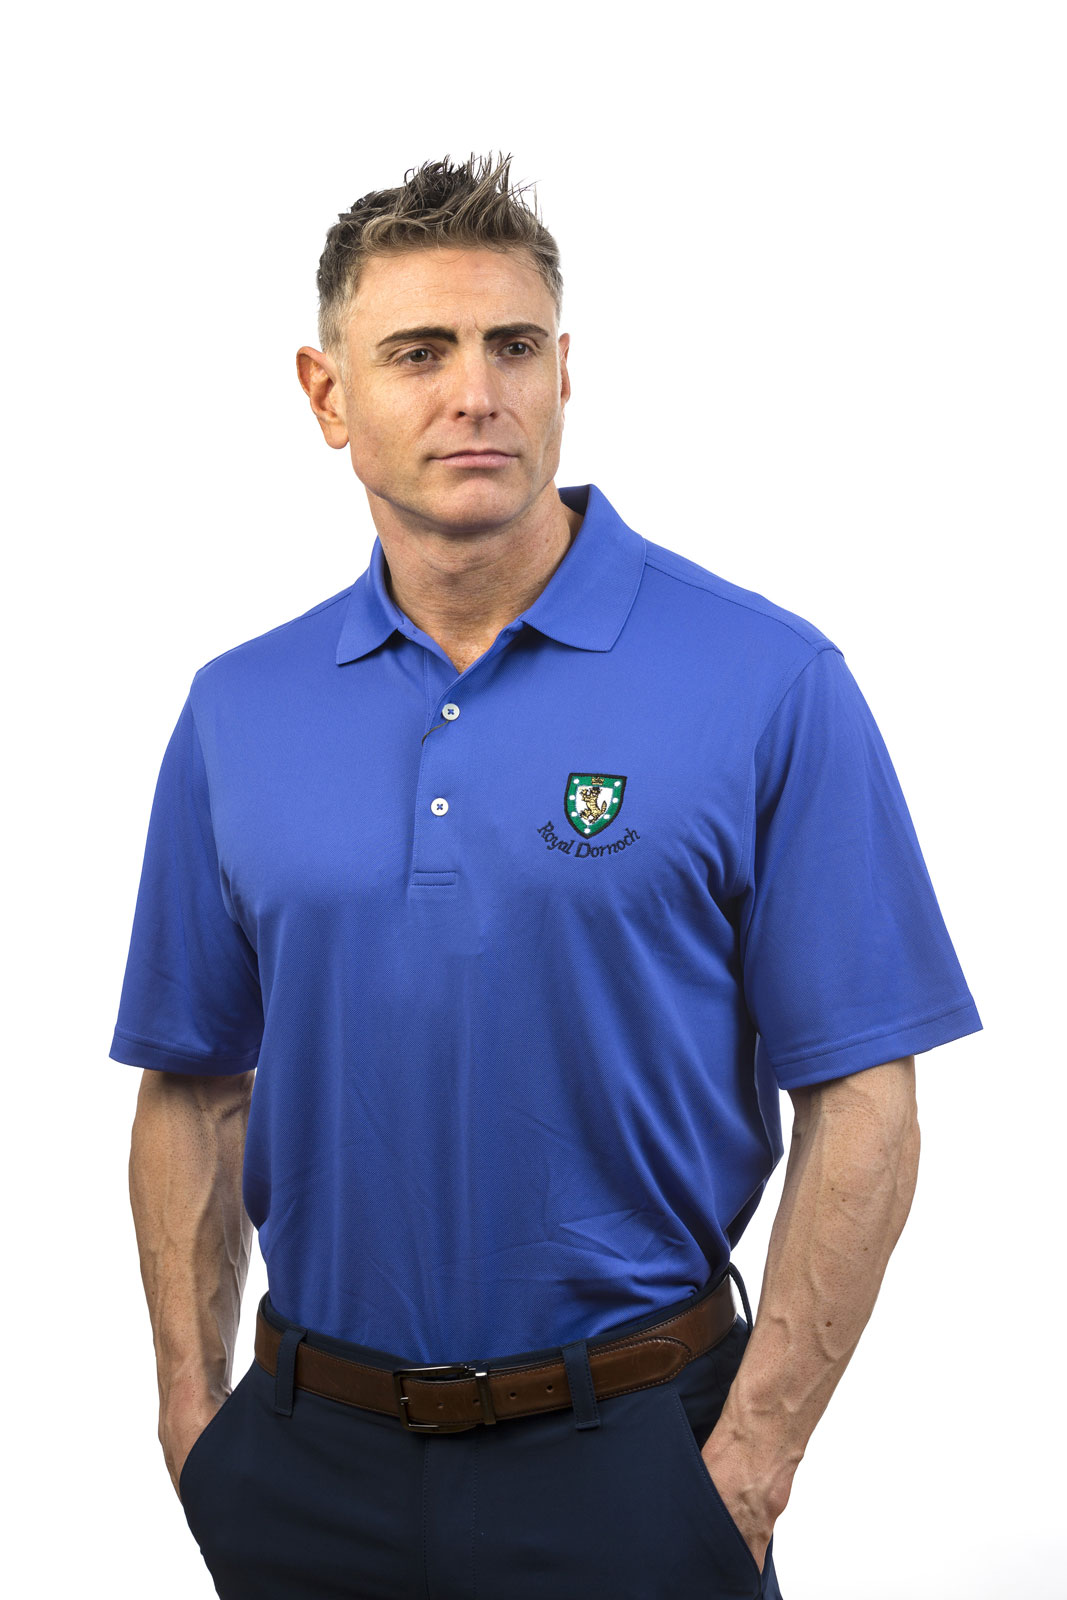 Donald Ross Performance Solid Shirt Royal Dornoch Pro Shop